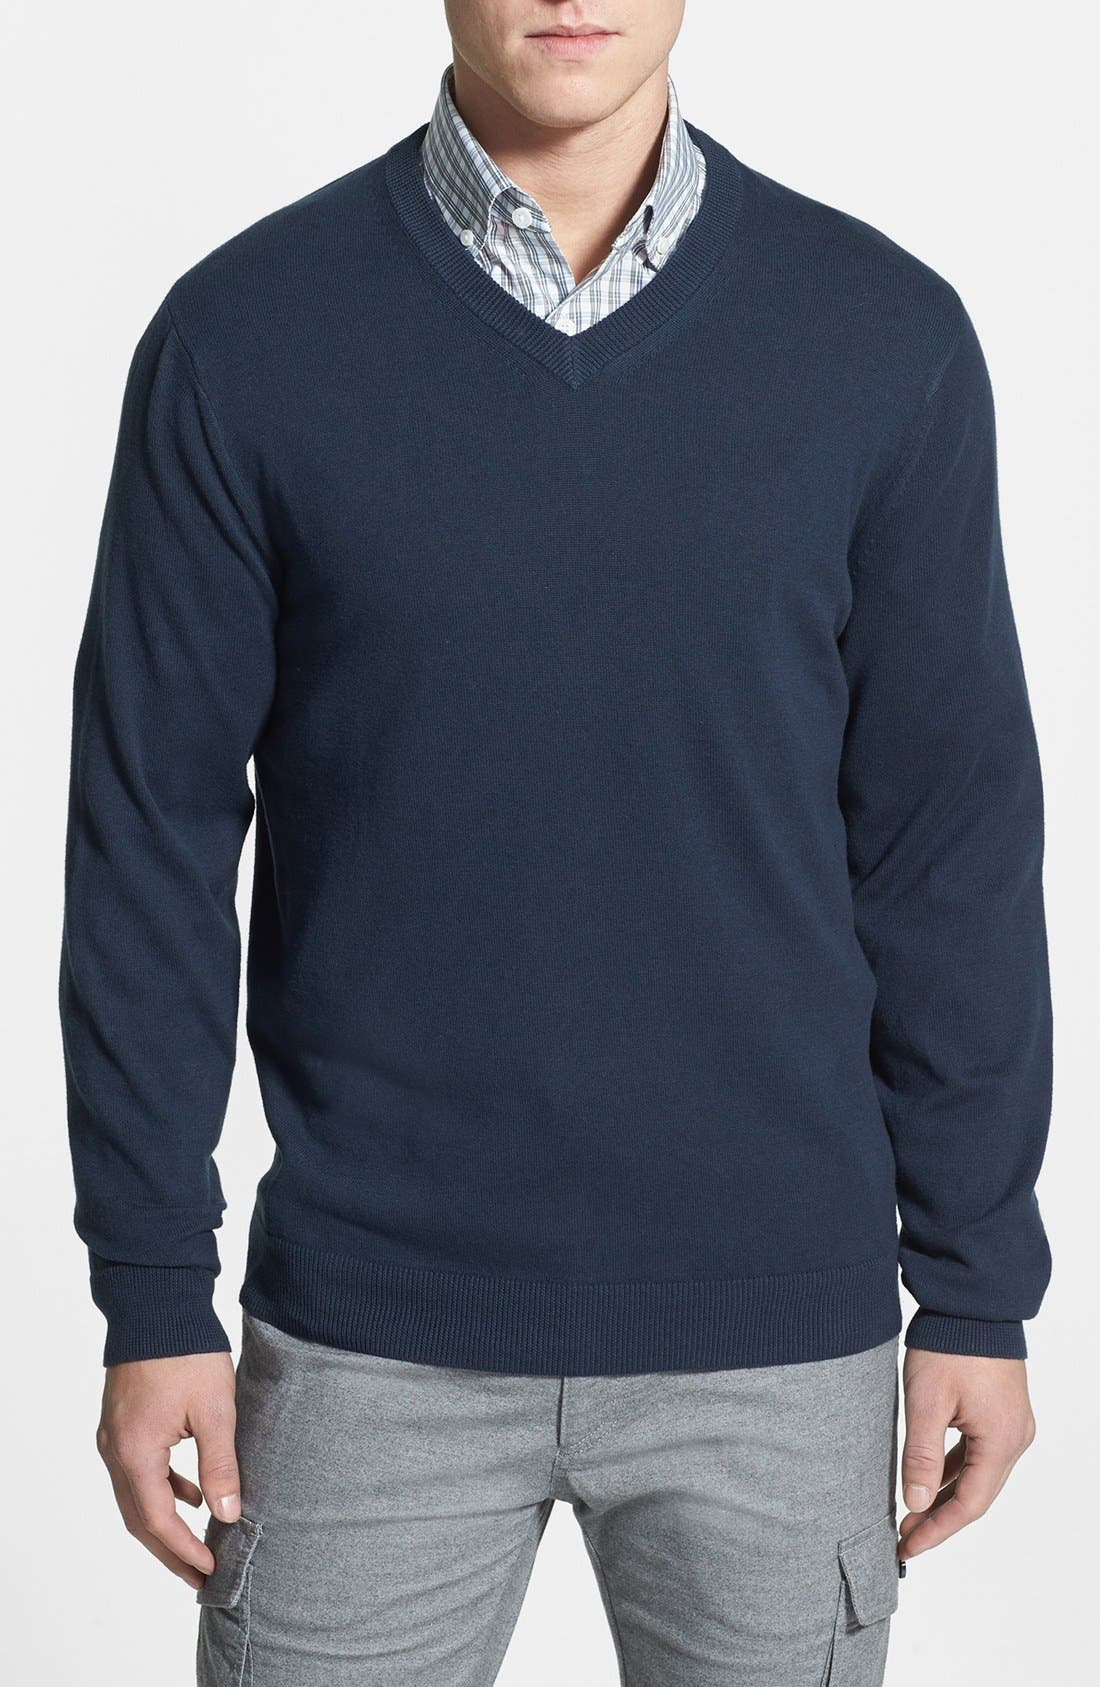 Alternate Image 1 Selected - Nordstrom V-Neck Cotton Sweater